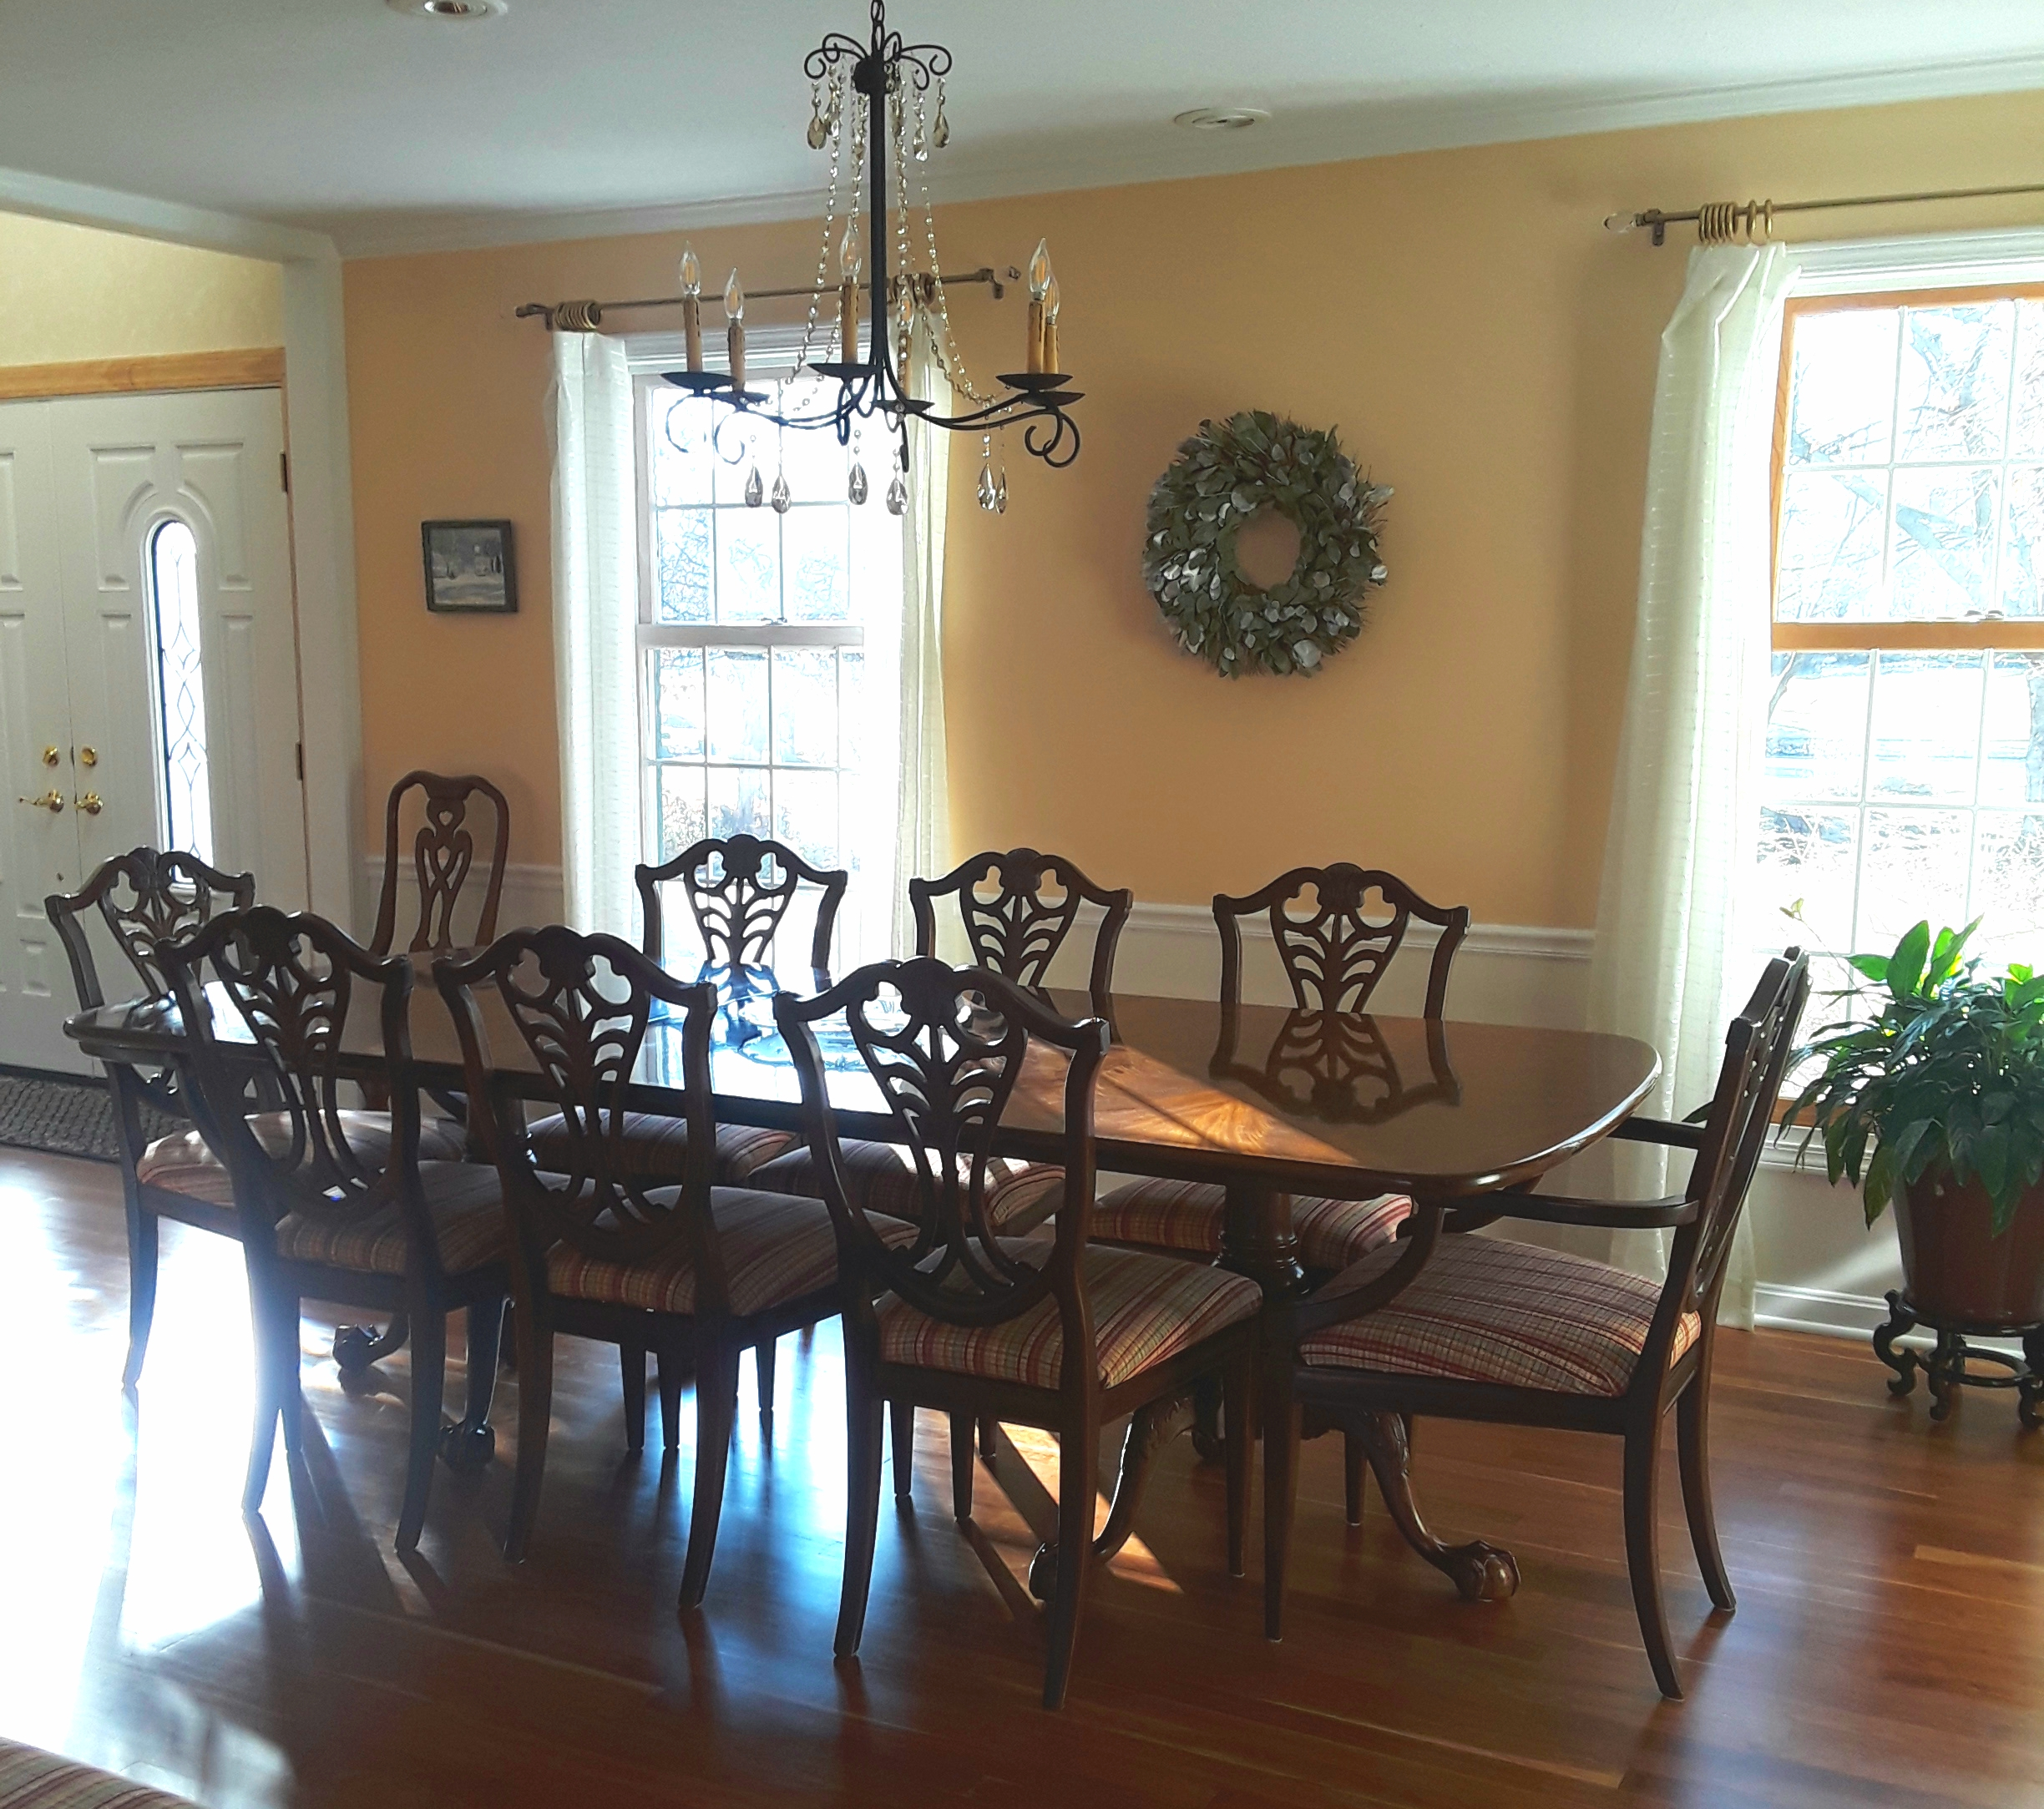 The almost finished dining room